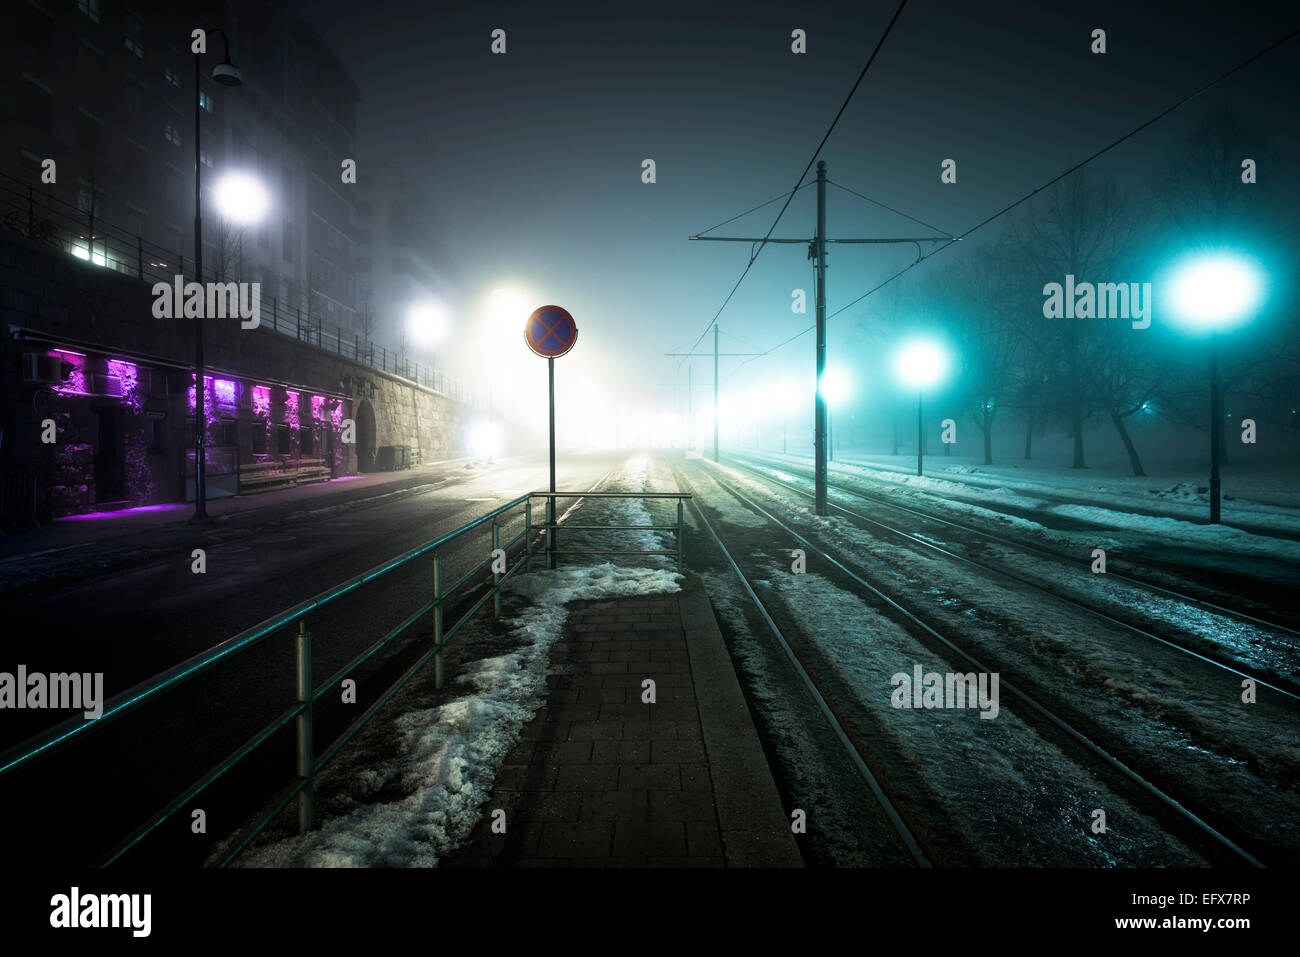 Foggy urban landscape from the City hall square area in Oslo. - Stock Image